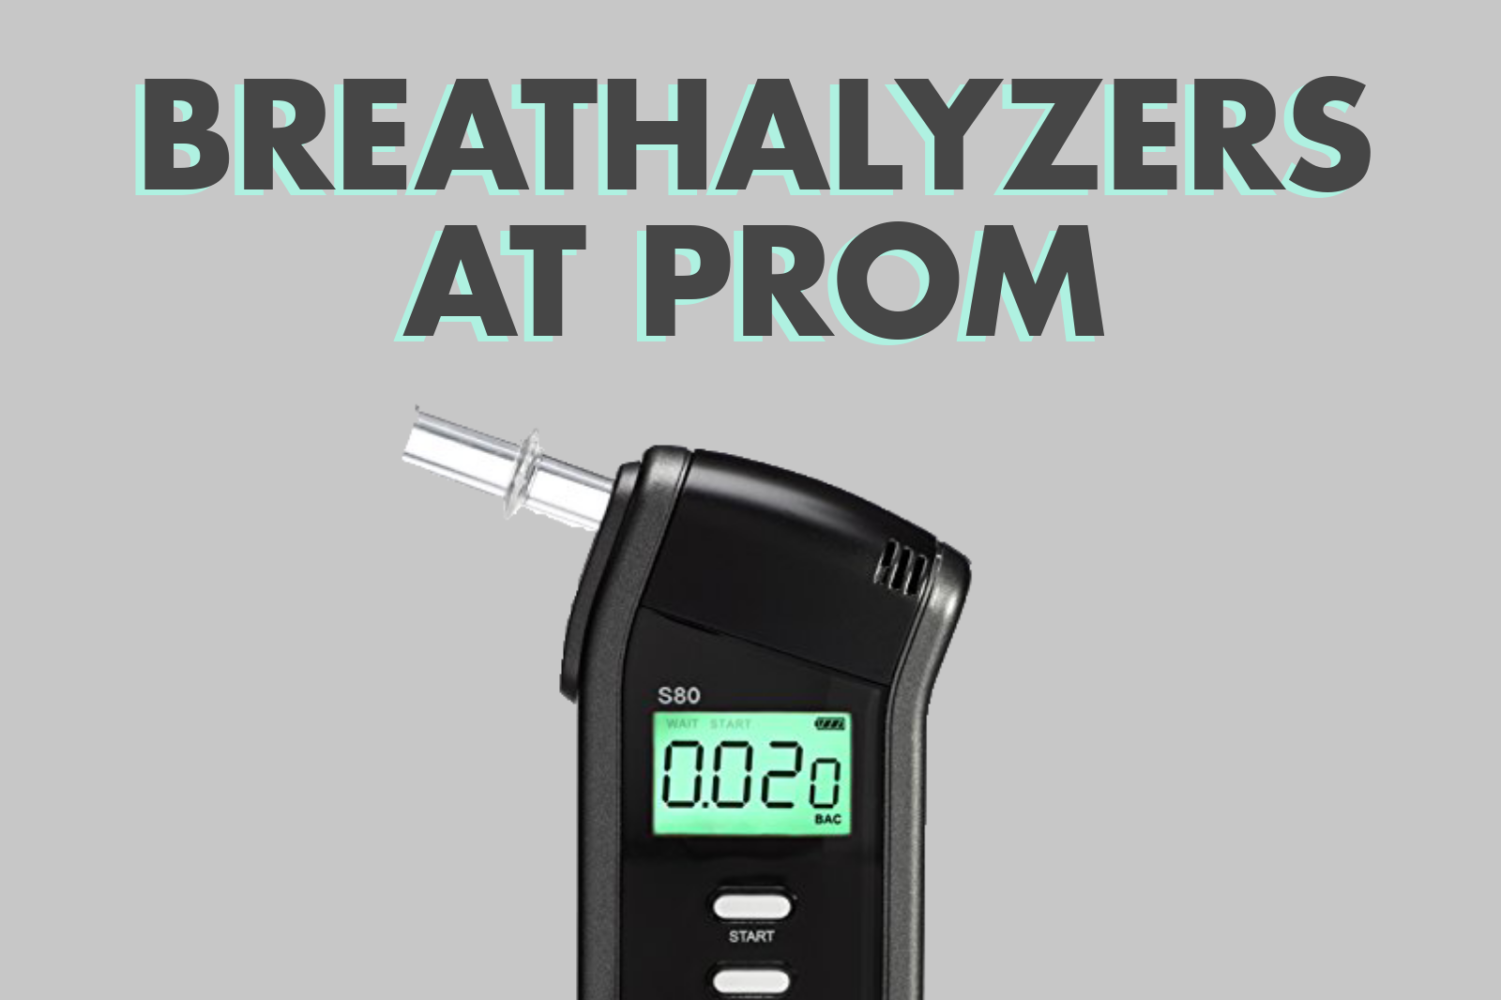 For the first time, breathalyzers will be used upon entering the dance.